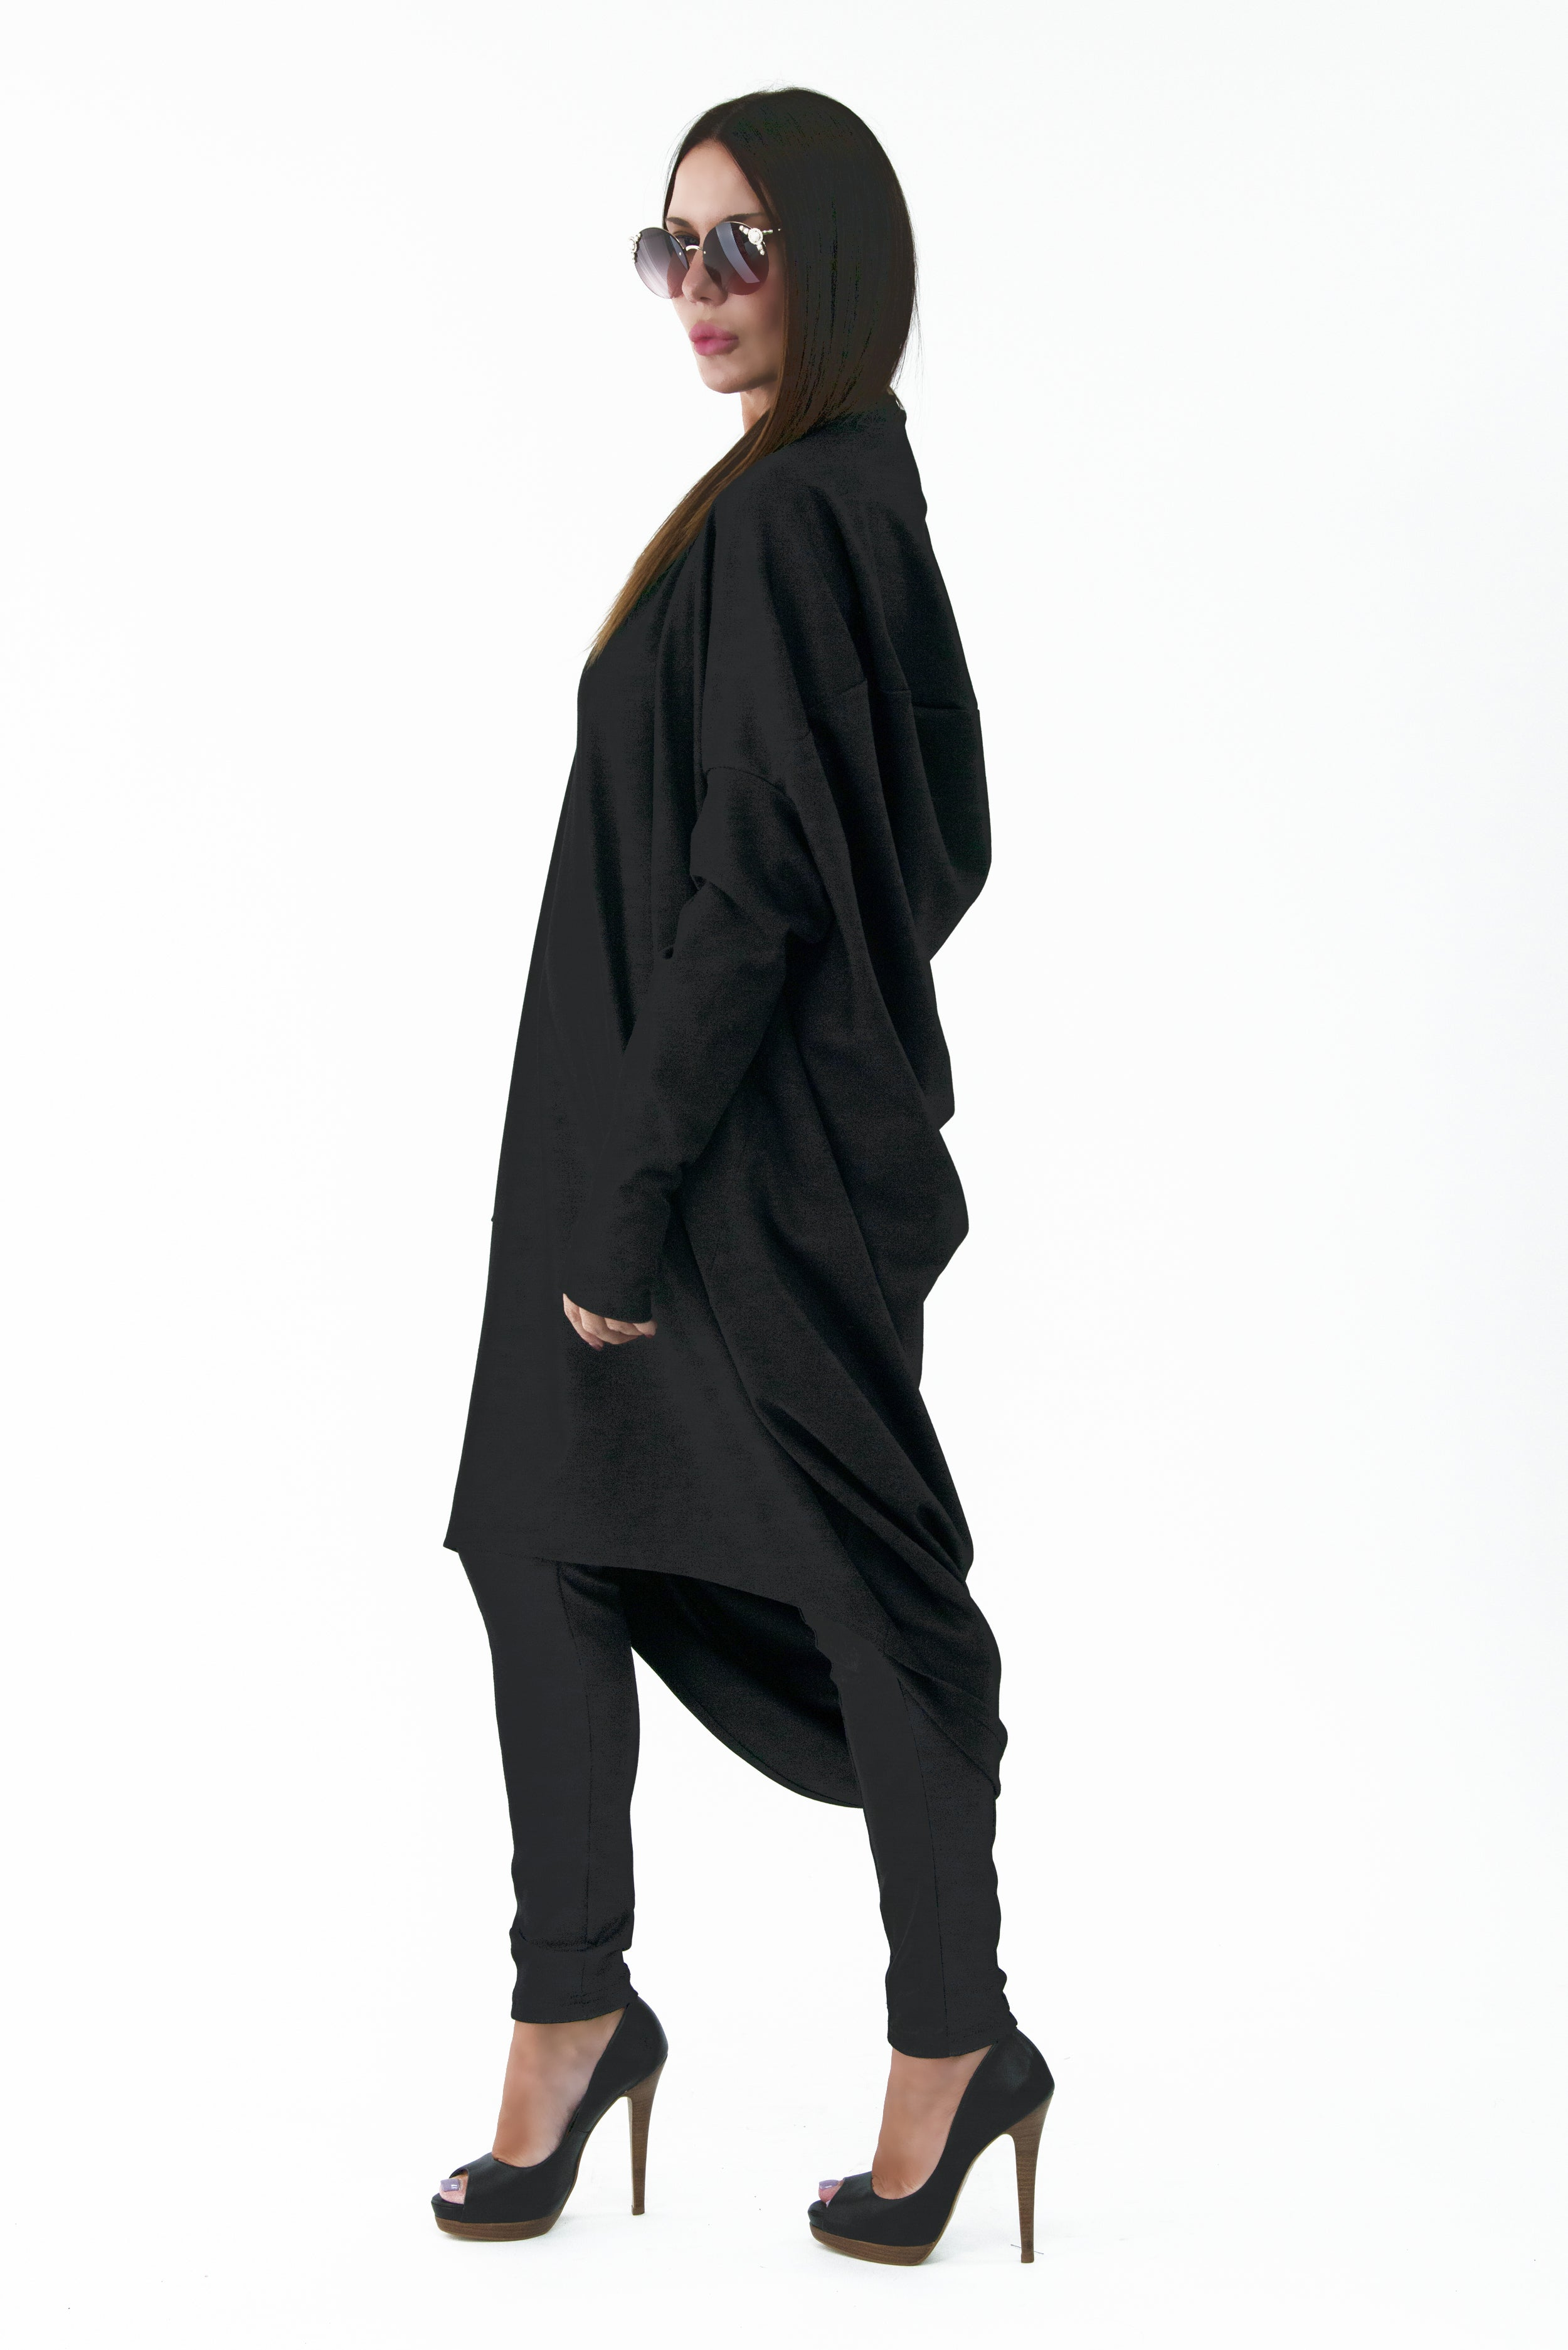 African Woman Black Long Winter Tunic, New Arrival